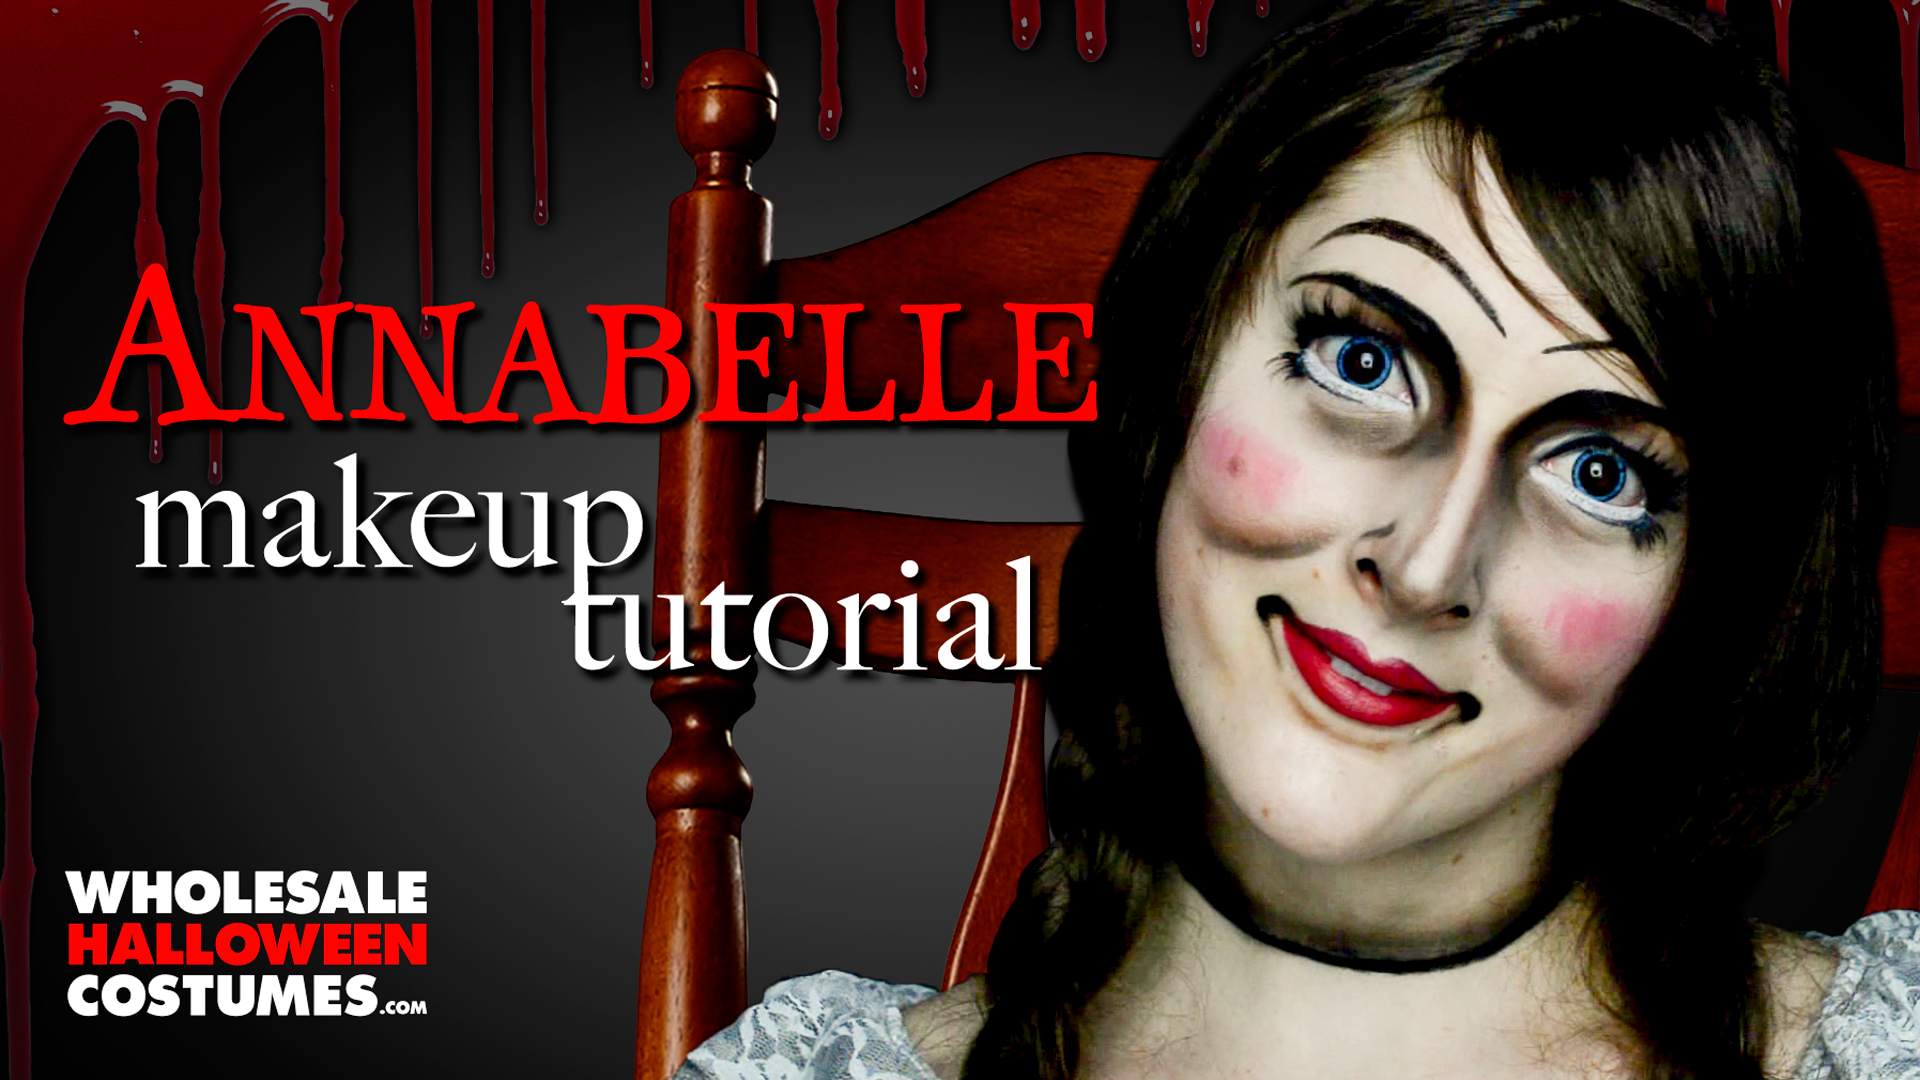 annabelle makeup tutorial wholesale halloween costumes blog